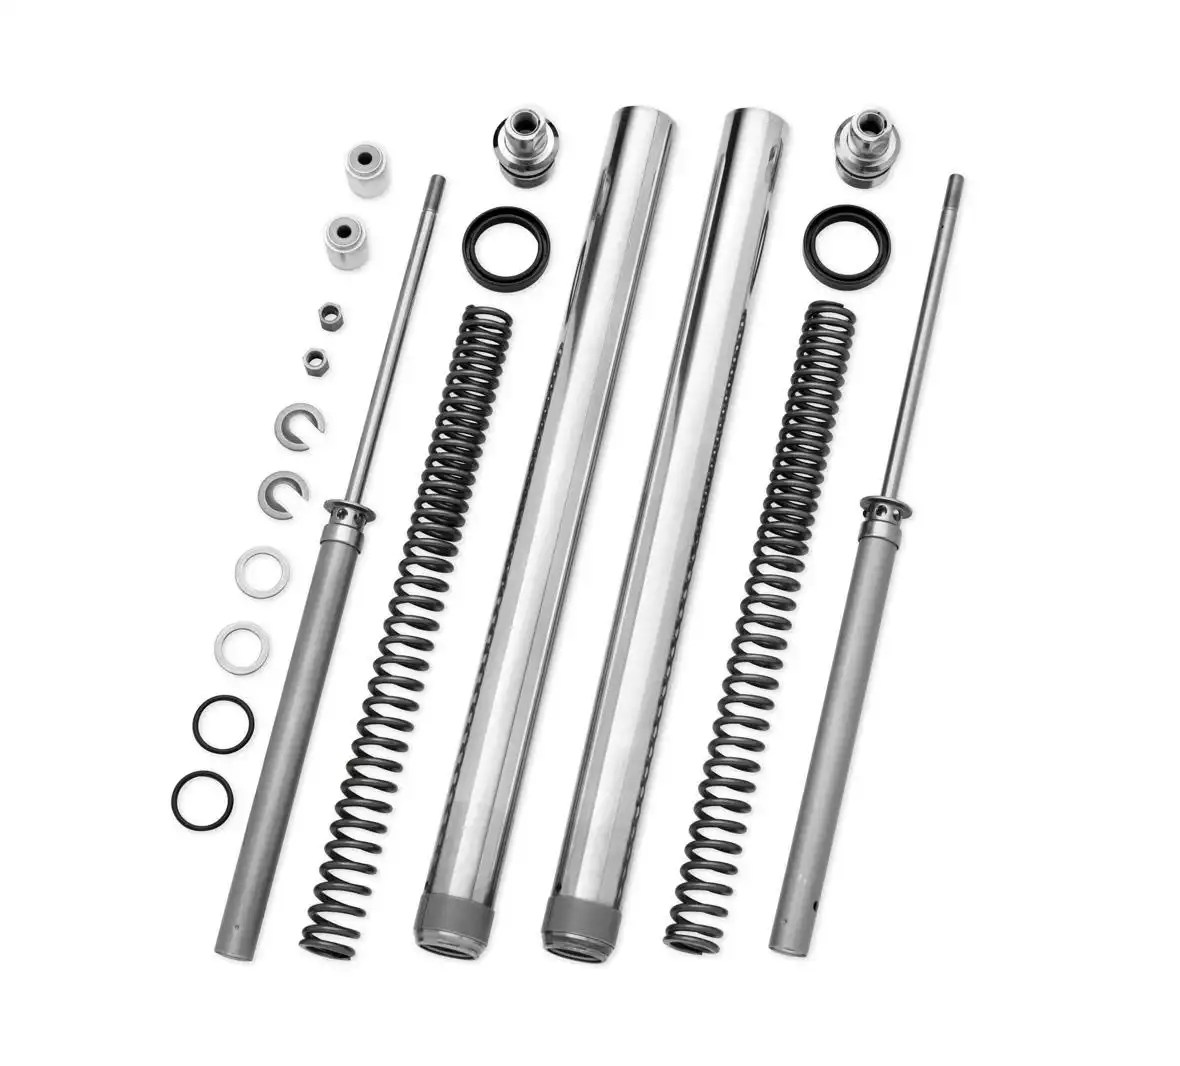 Premium Ride Double Cartridge Fork Kit At Thunderbike Shop